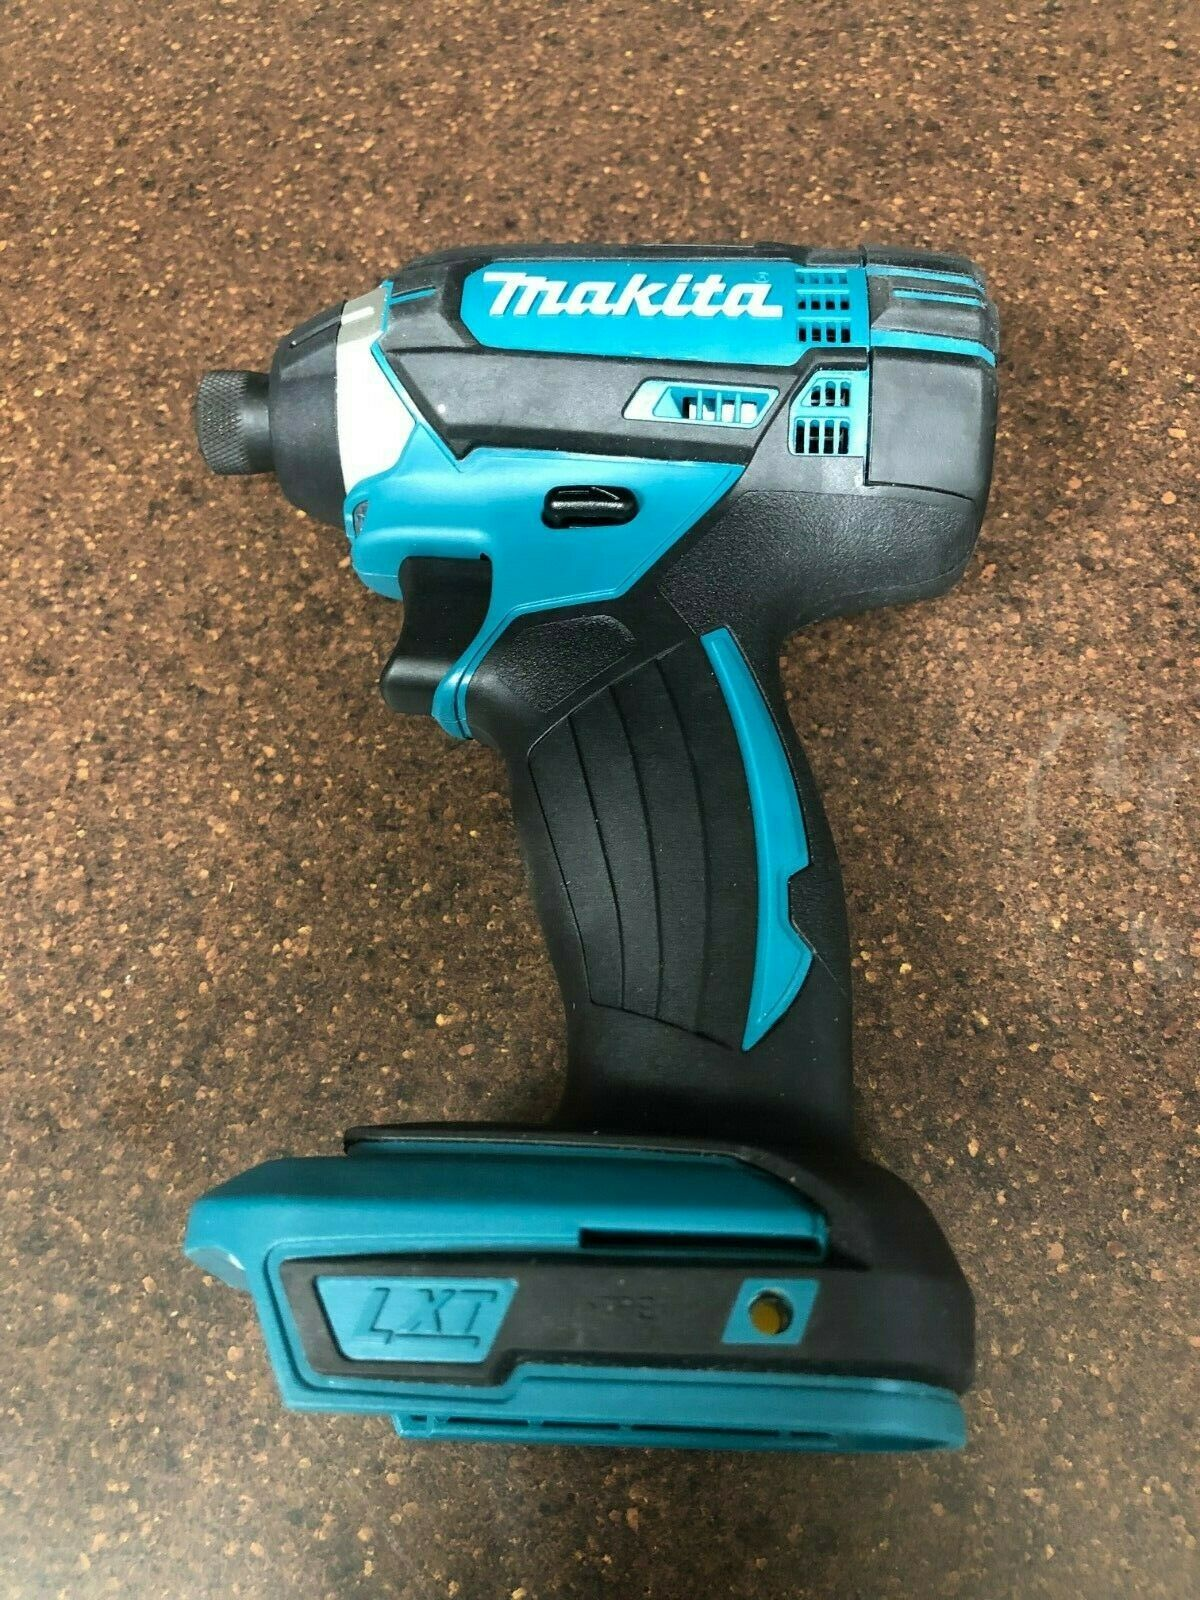 Makita 18VT LXT Lithium-Ion 1 4in Cordless Impact Driver XDT11 Tool Only